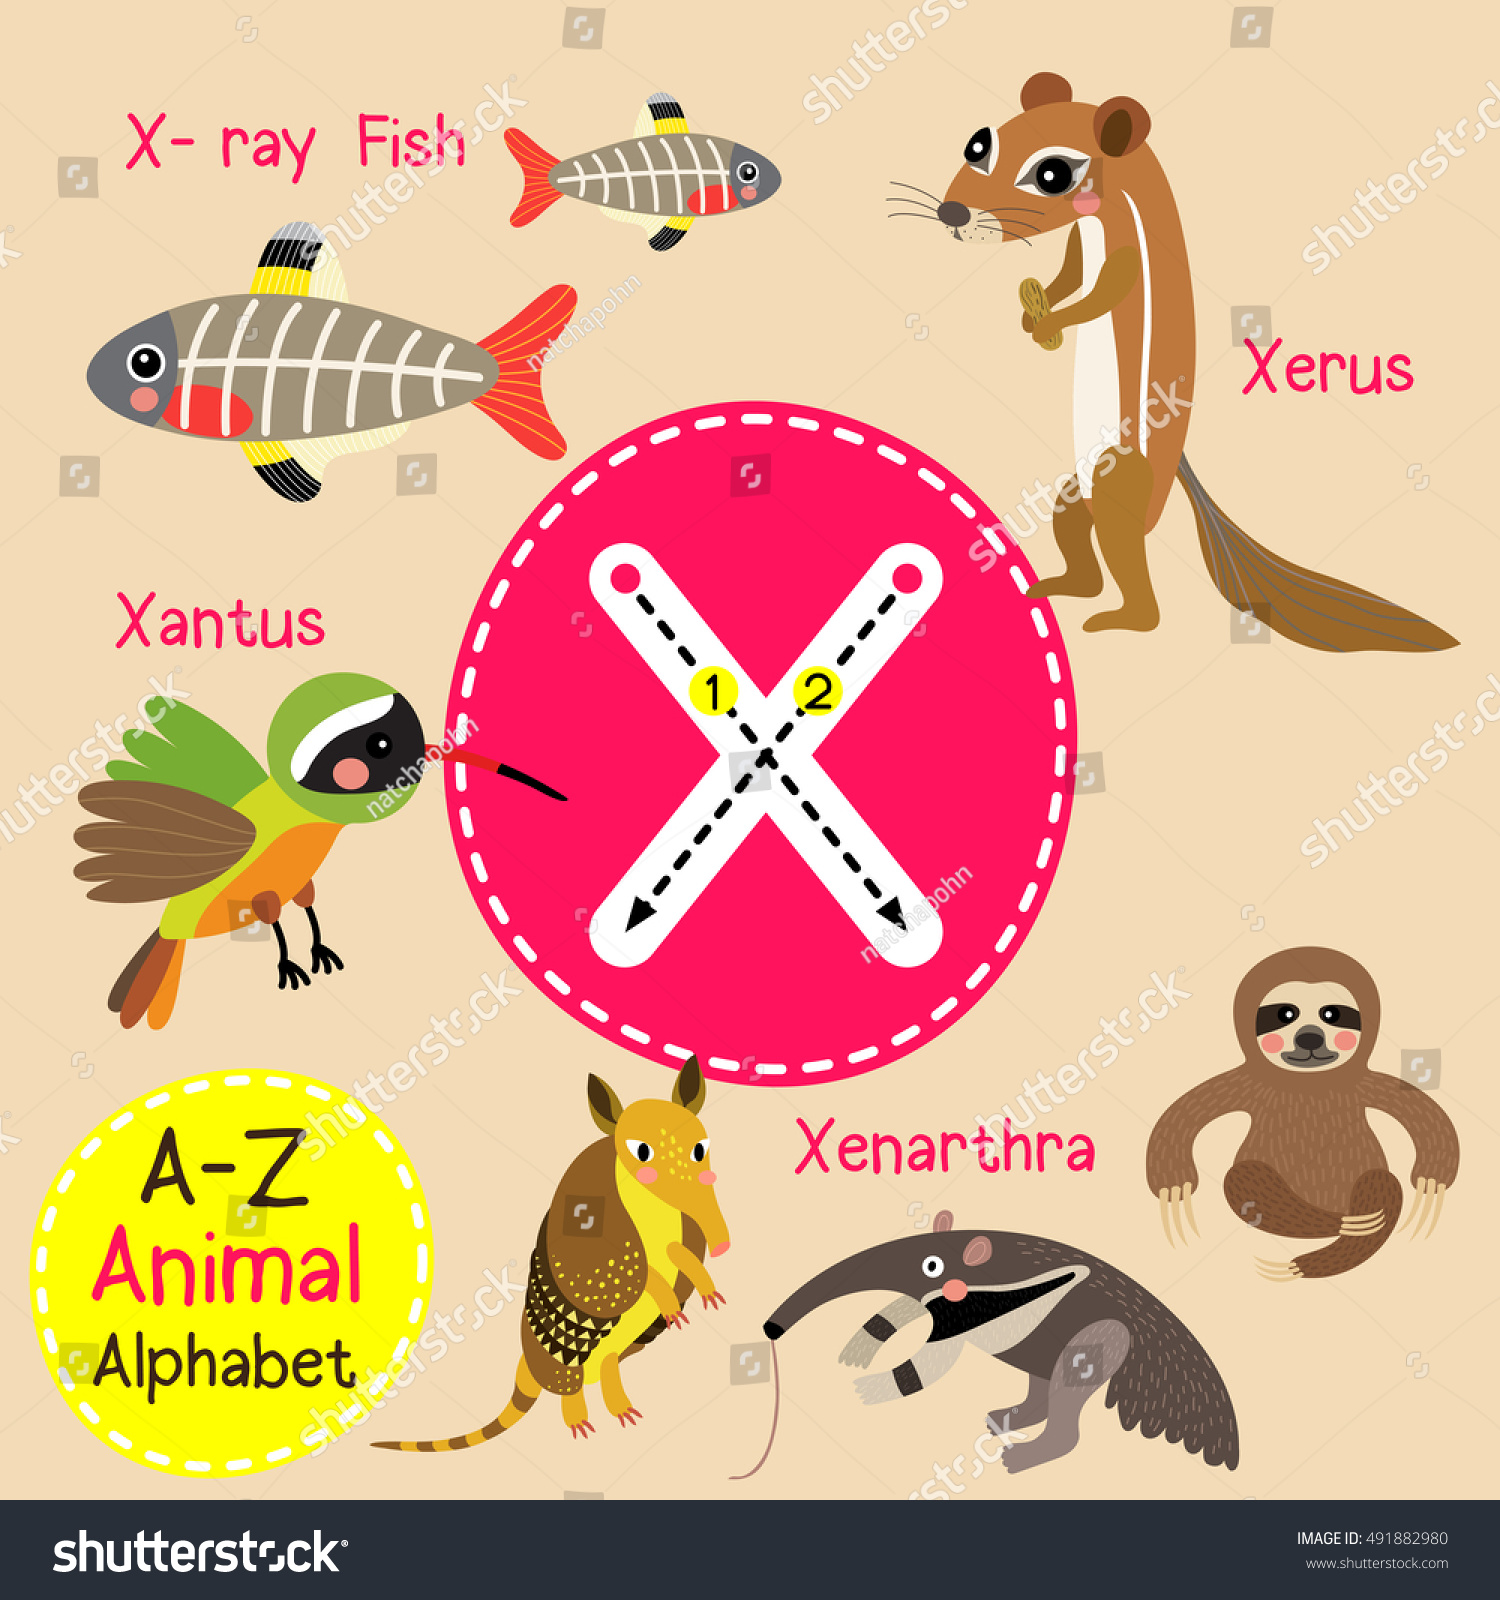 Worksheets Starts With Letter X cute children zoo alphabet x letter stock vector 491882980 tracing of funny animal cartoon for kids learning english vocabulary